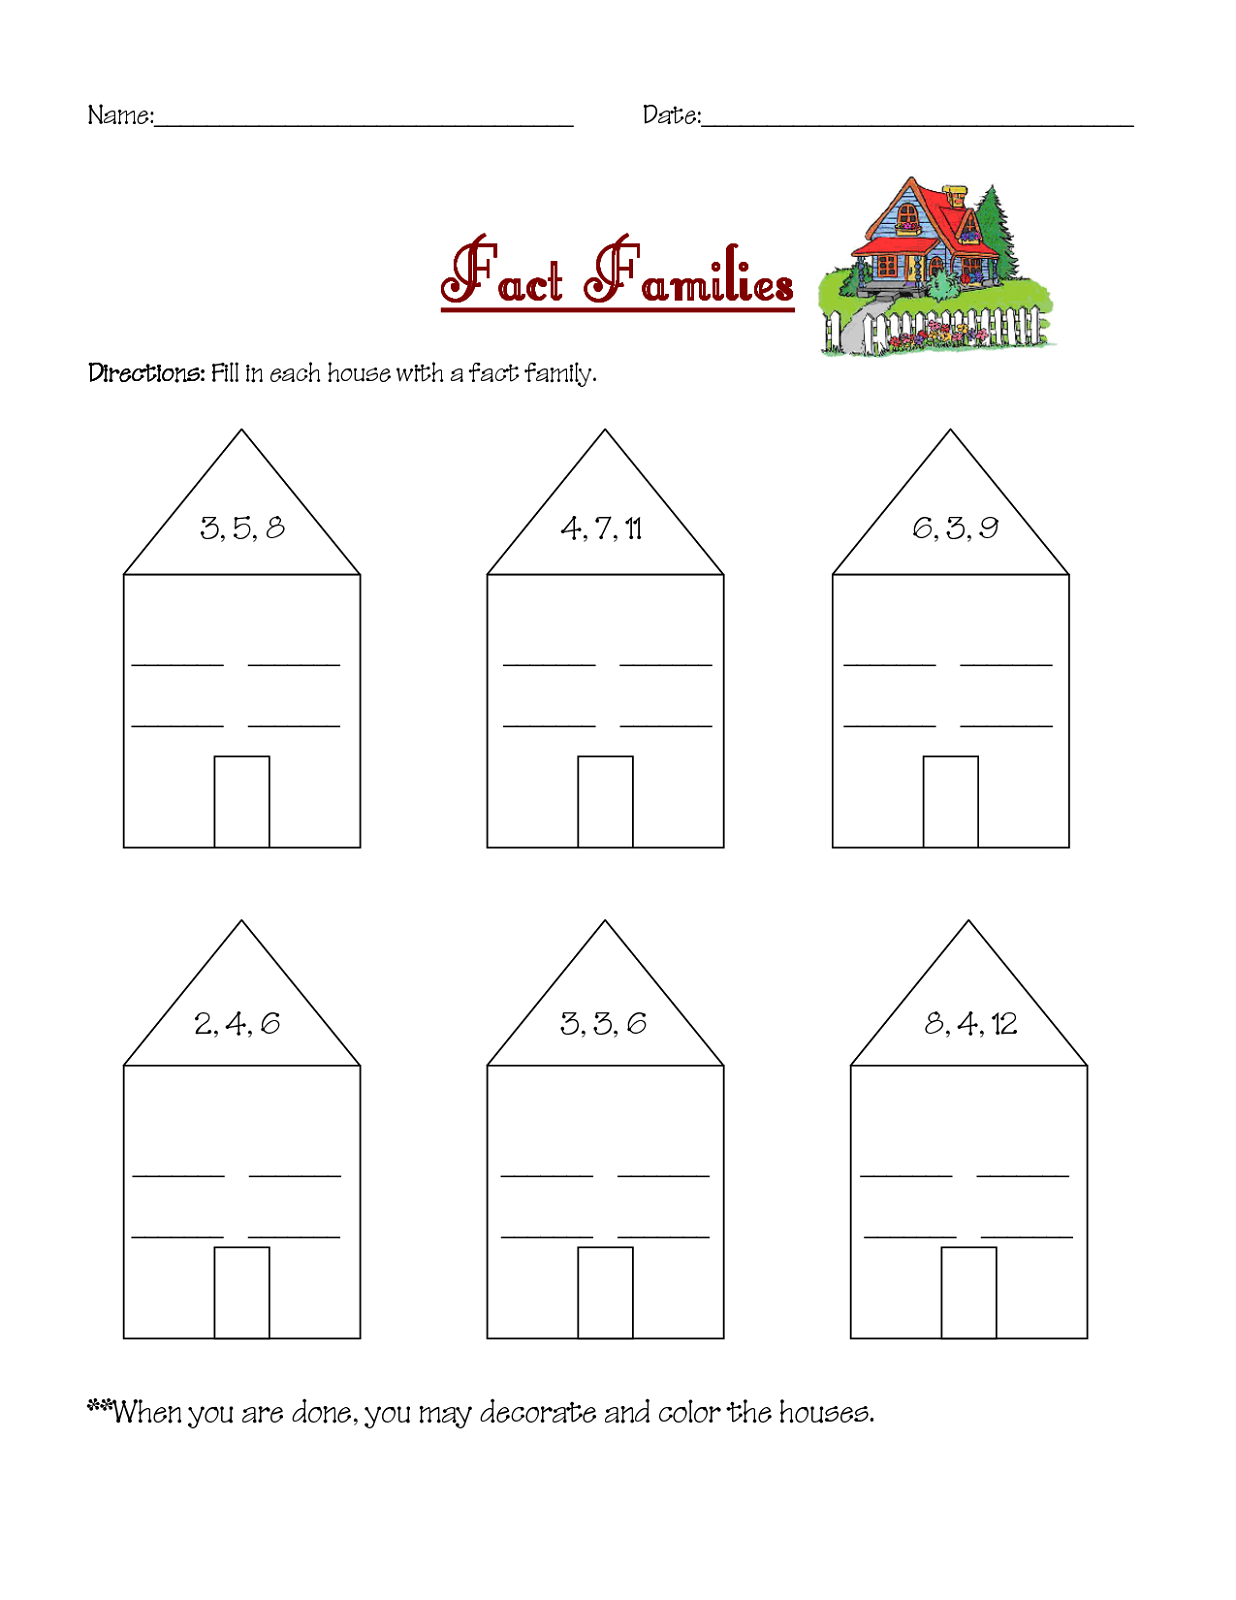 worksheet Addition Fact Family Worksheets fact family worksheets printable activity shelter kids shelter